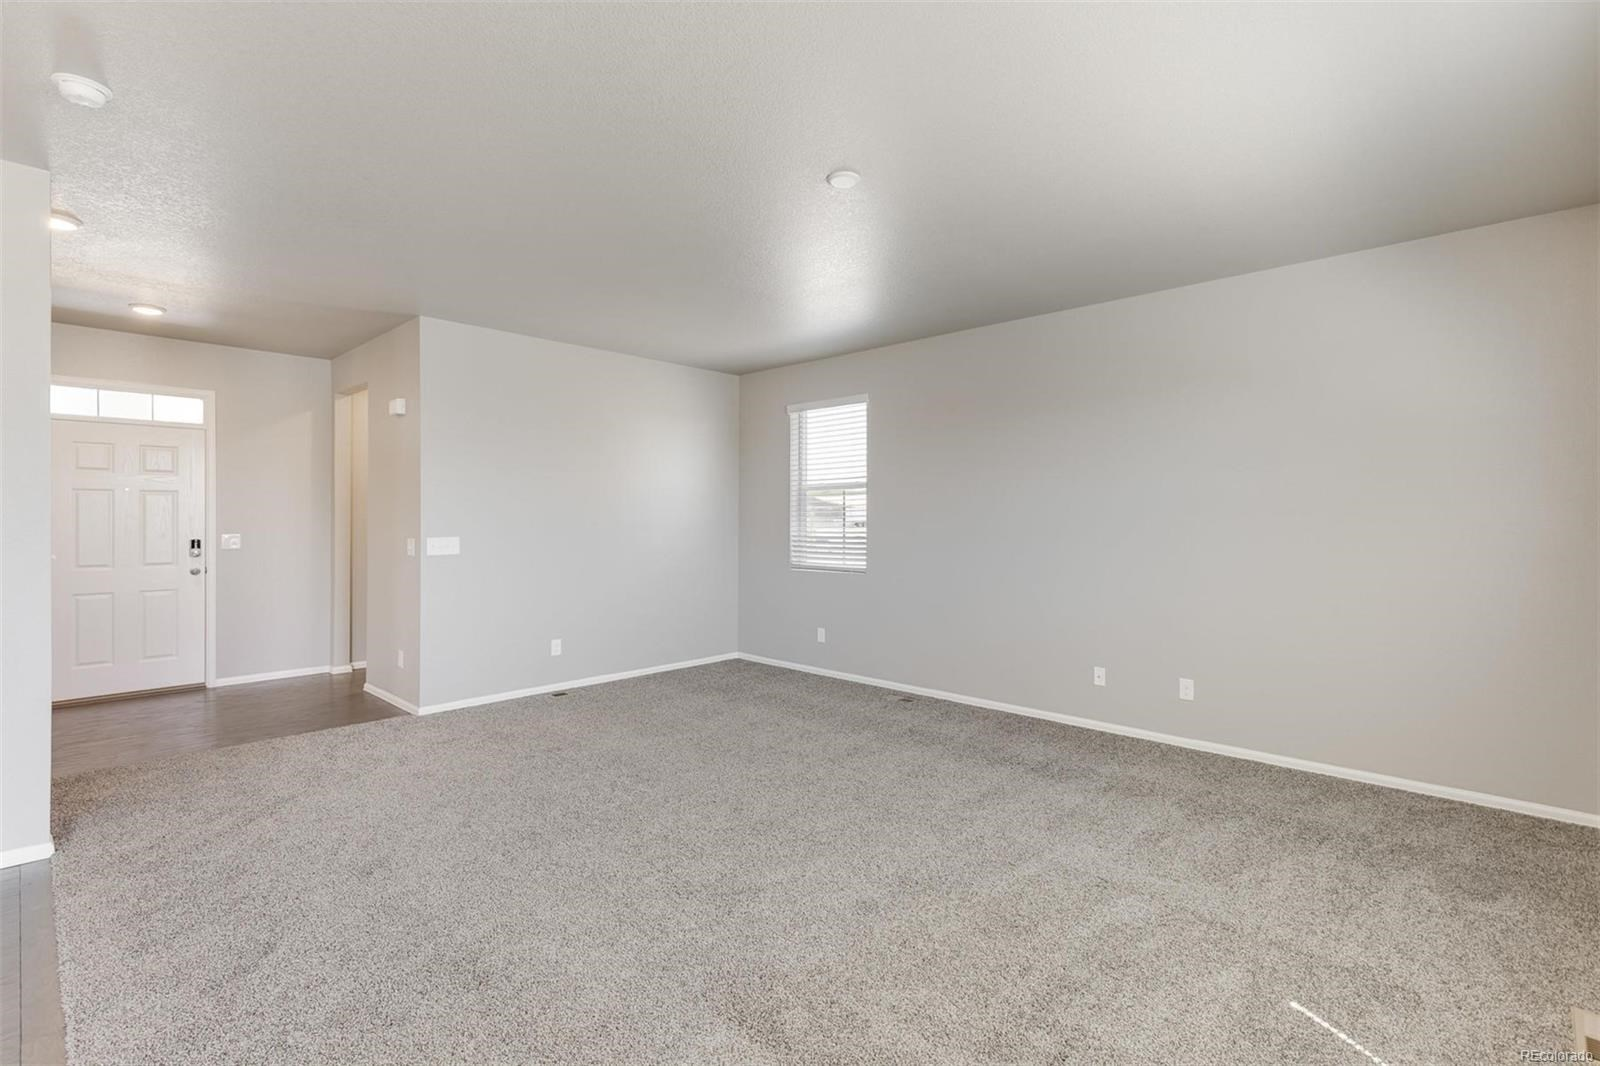 MLS# 3645271 - 5 - 6915 Grainery Court, Timnath, CO 80547